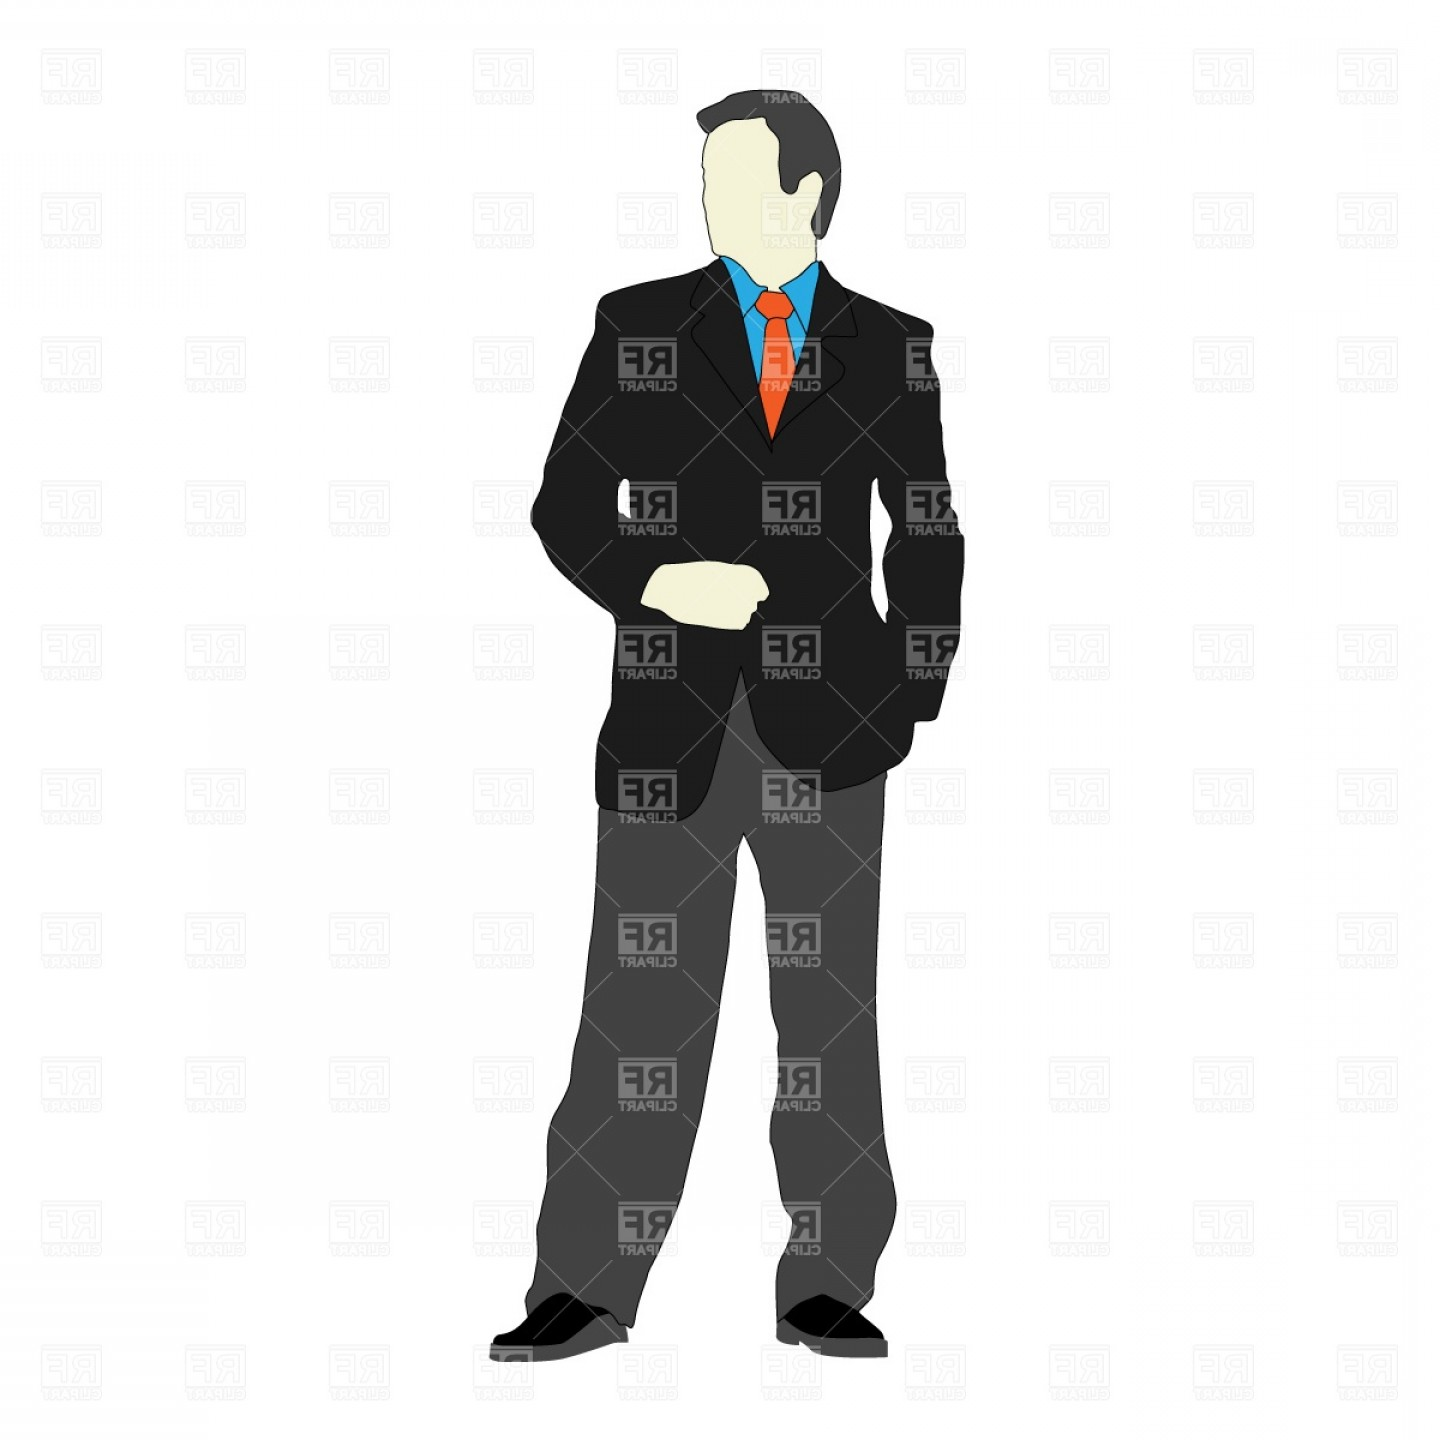 Male Silhouette Vector Art: Businessman In Suit With Hand In Pocket Vector Clipart